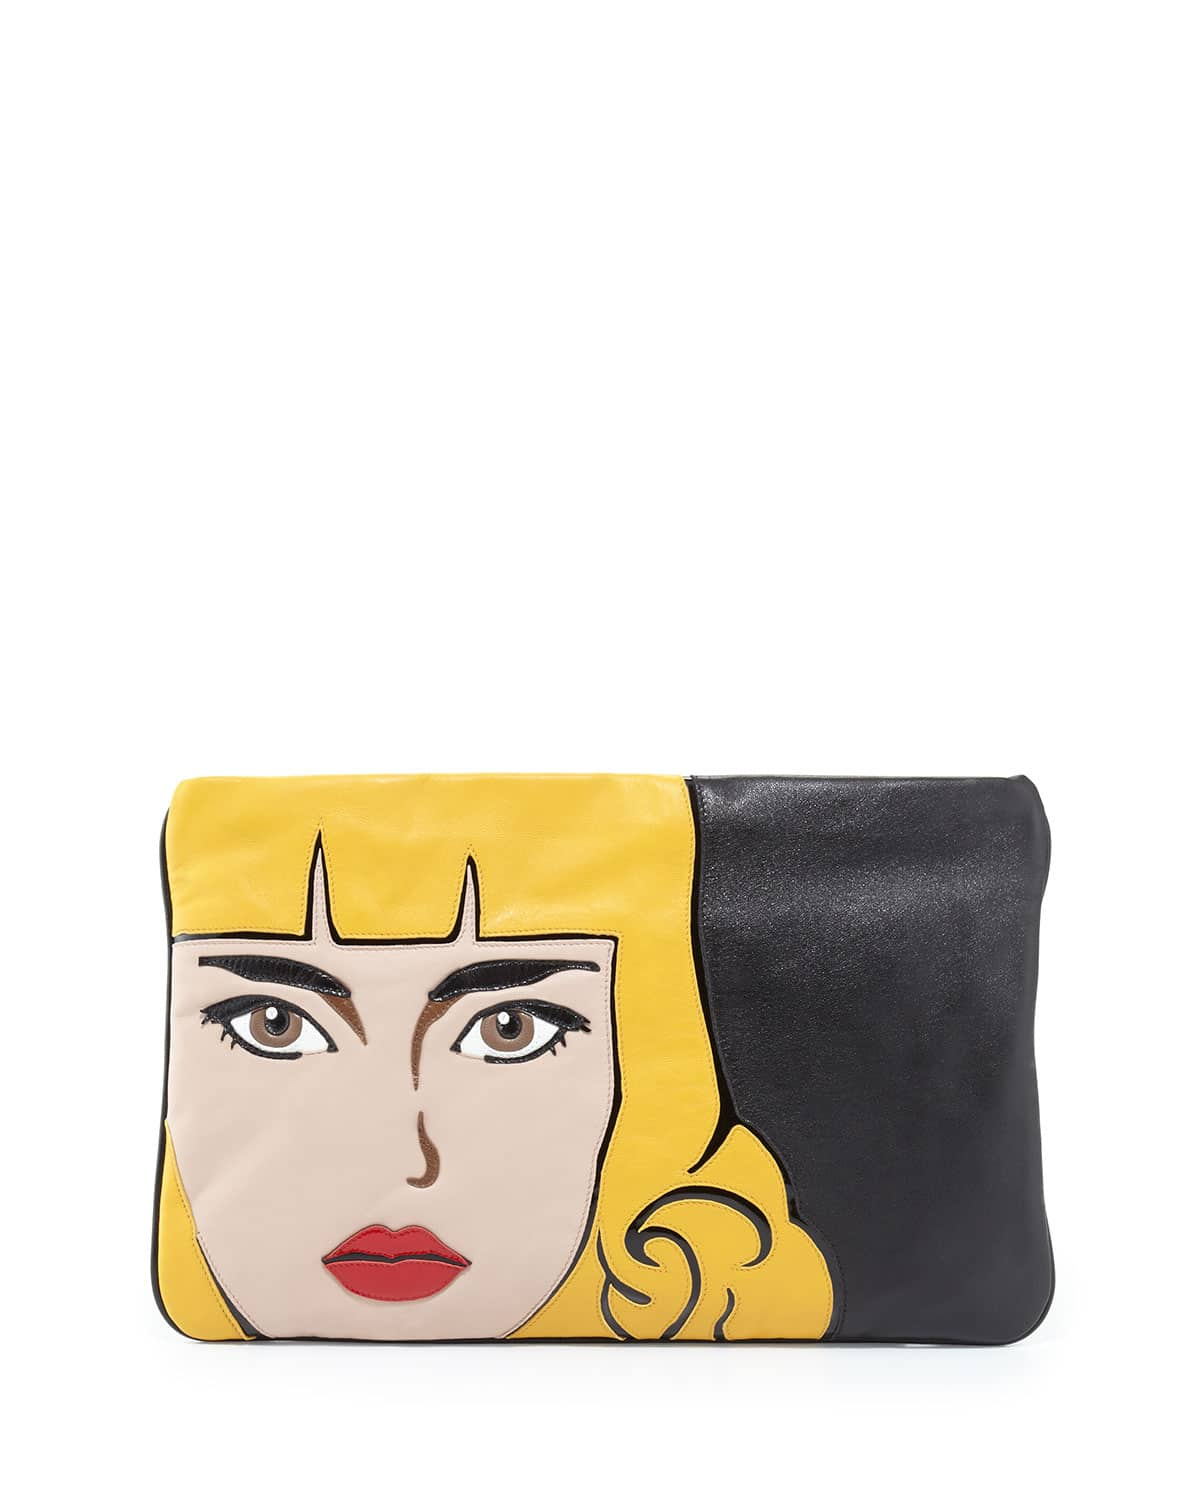 prada shoulder bag leather - Prada Pre-Fall 2014 Bag Collection featuring new Double Totes in ...